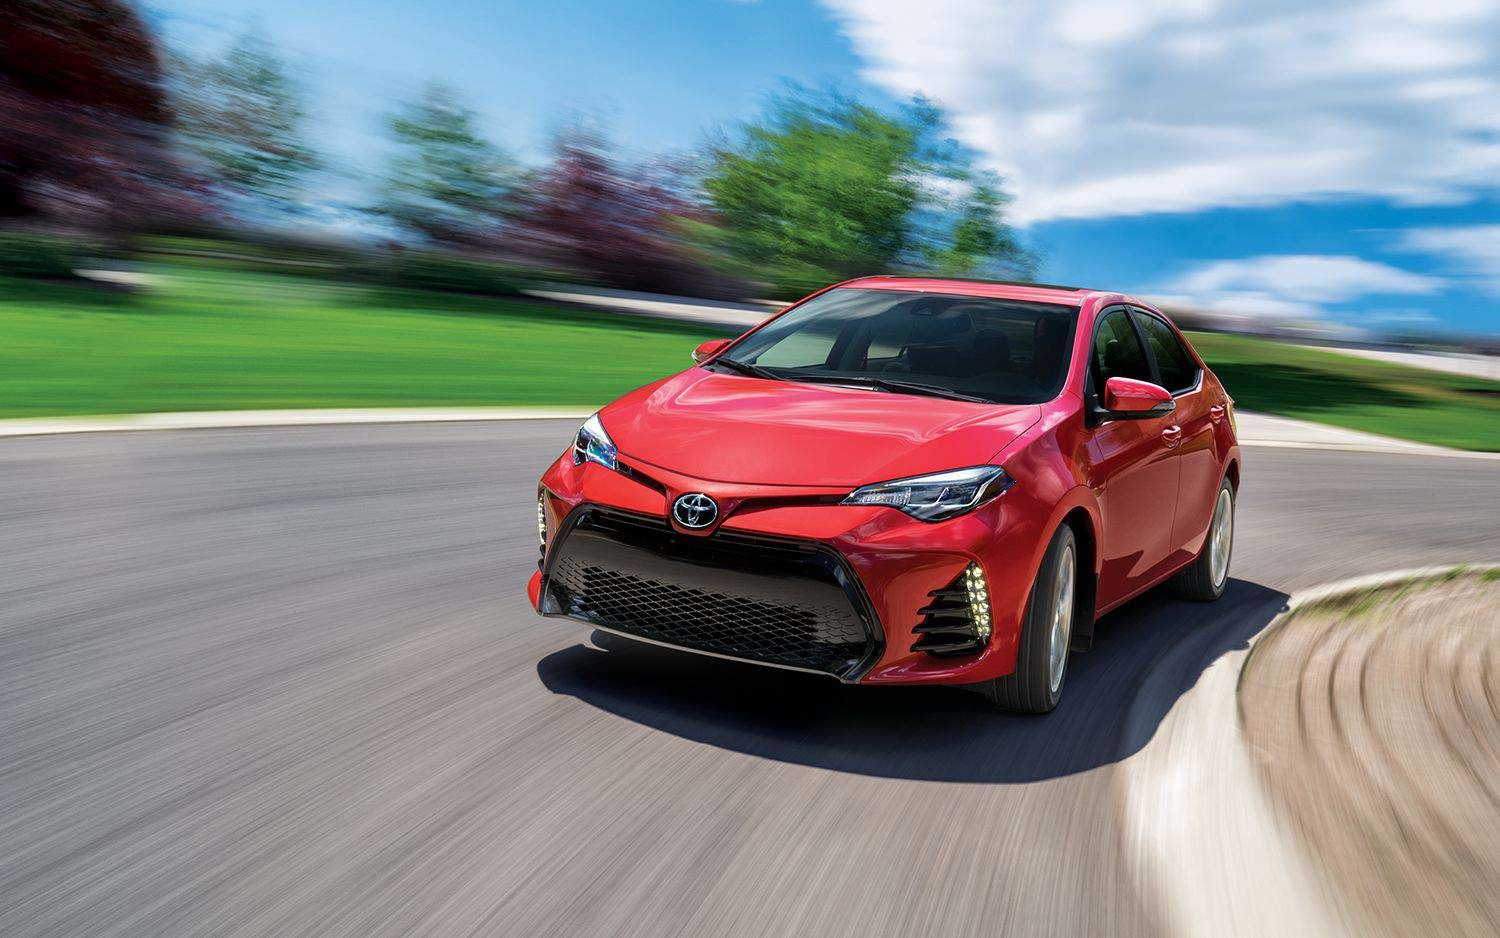 Letu0027s Compare The 2018 Hyundai Elantra To The 2018 Toyota Corolla That You  Can Check Out At Amherst Toyota, In Amherst In Nova Scotia, Near Moncton.